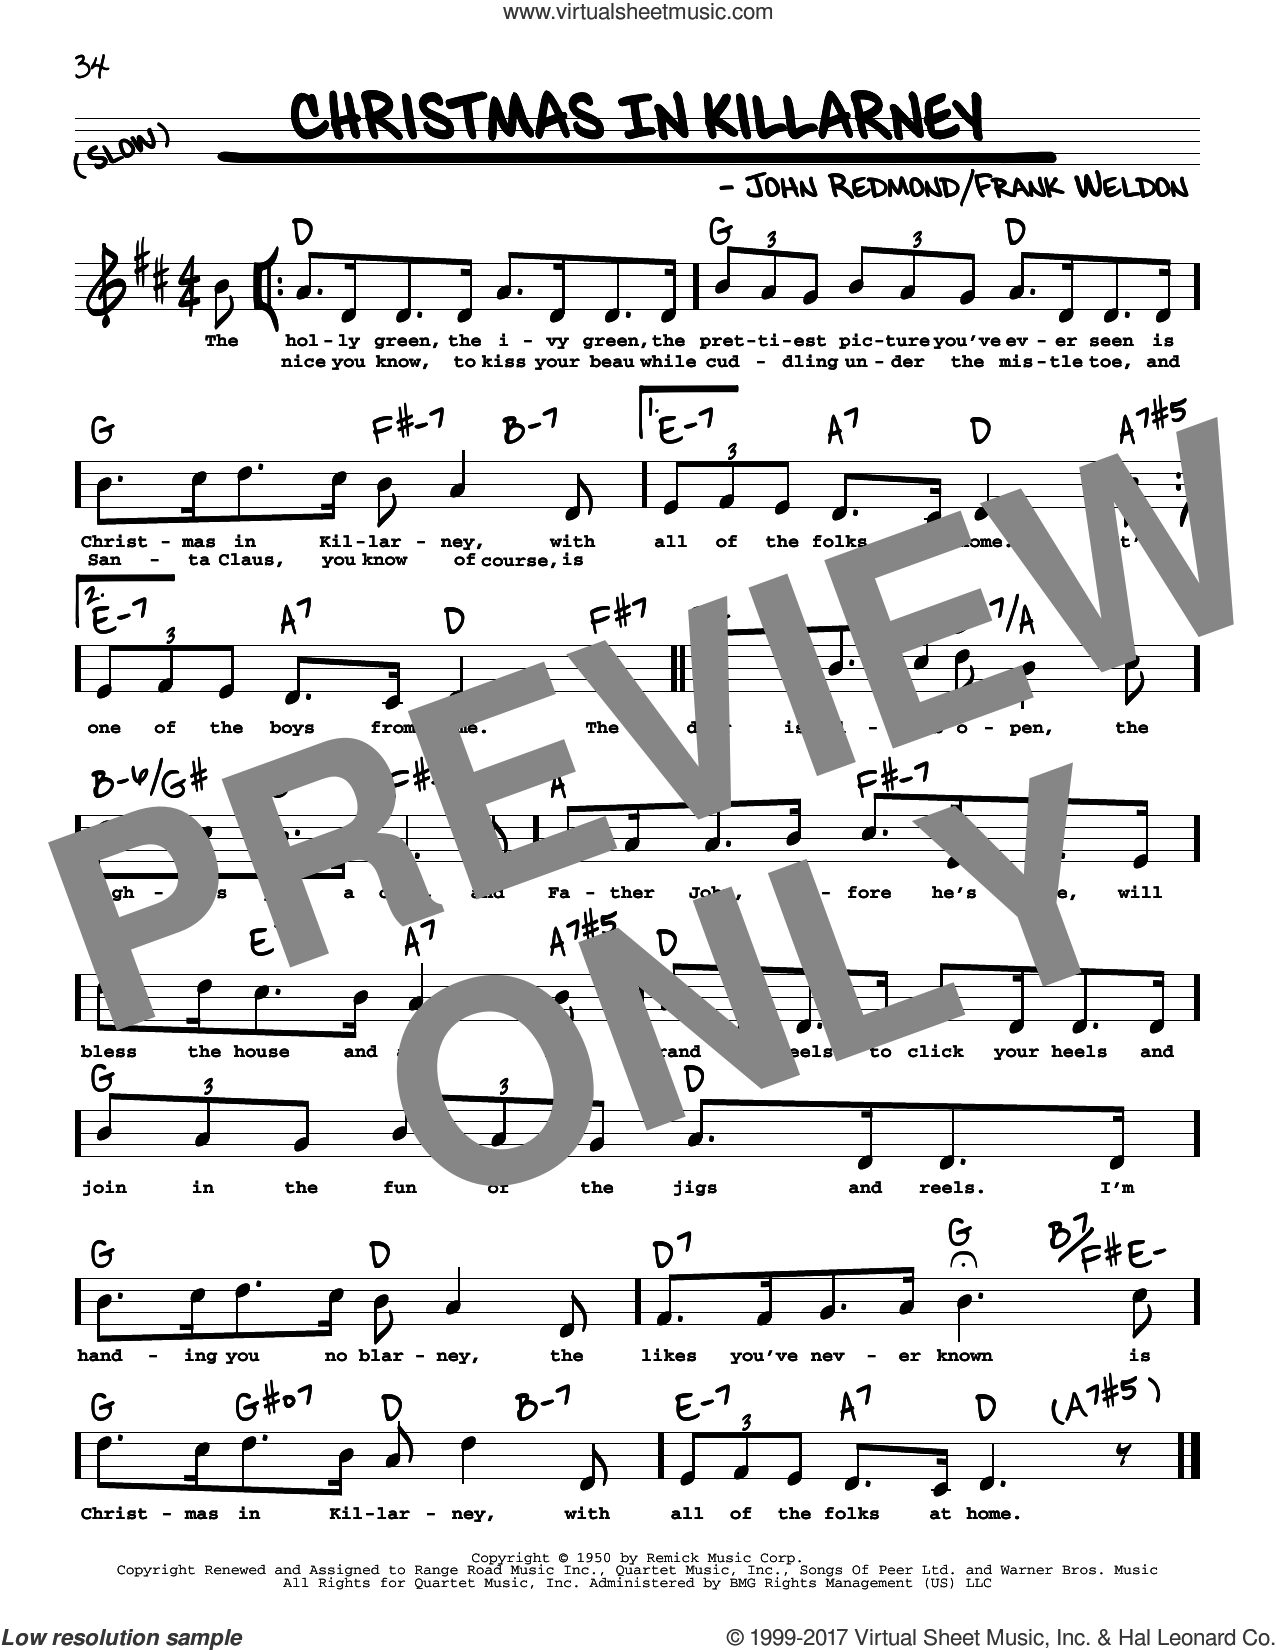 Christmas In Killarney sheet music for voice and other instruments (real book with lyrics) by John Redmond and Frank Weldon, intermediate skill level